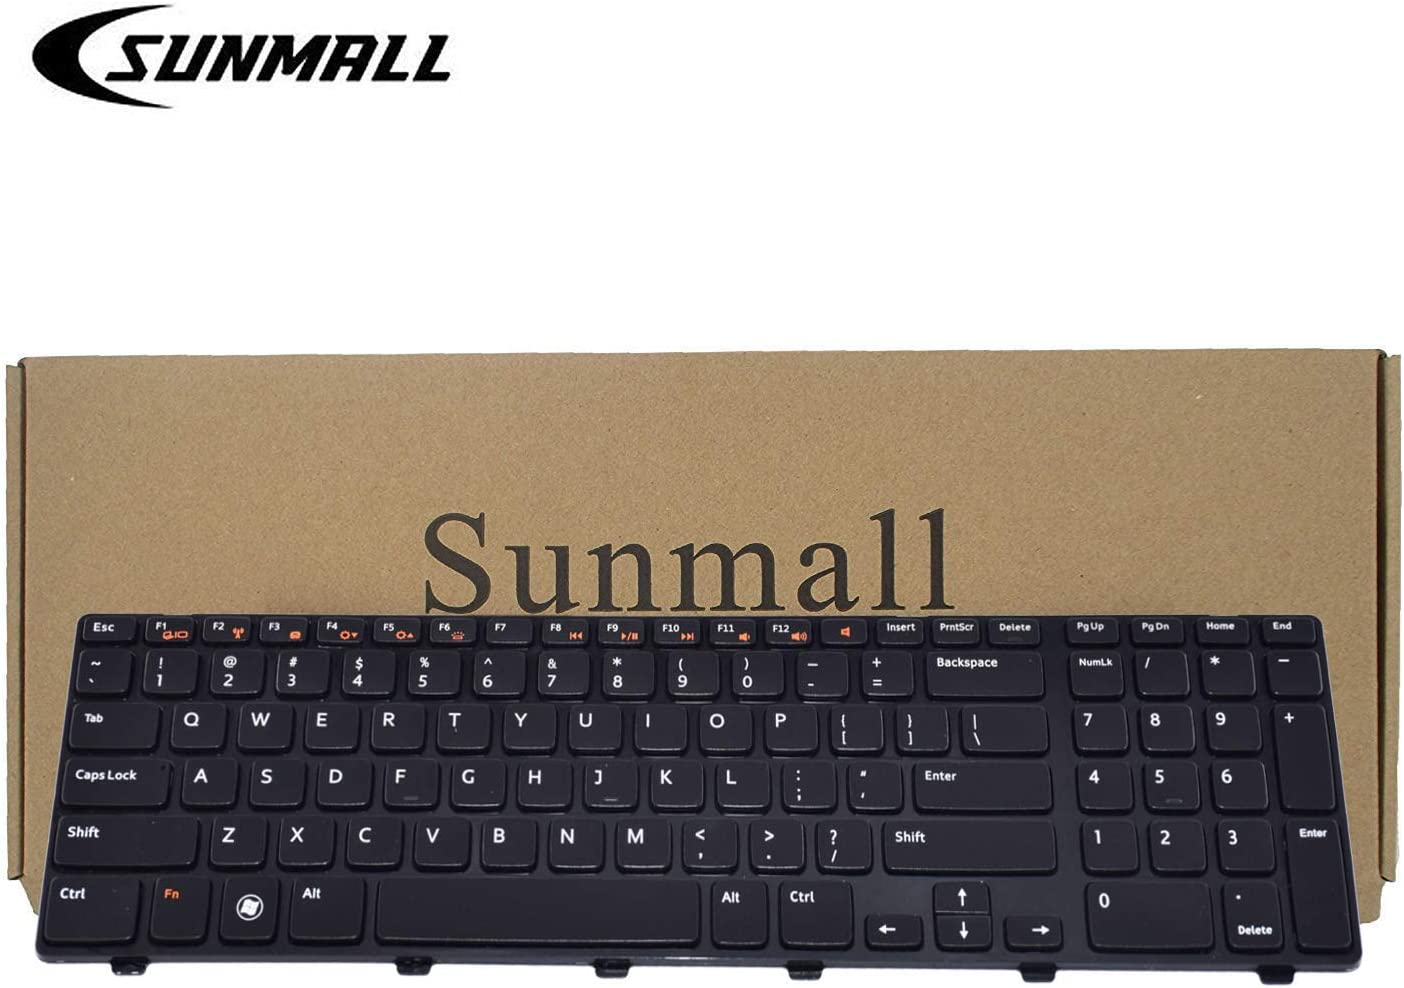 SUNMALL Keyboard Replacement with backlit for Dell Inspiron 17 17R N7110 5720 7720/XPS 17 L701X L702 X 454RX 0454RX/Vostro 3750 Series Laptop US Layout